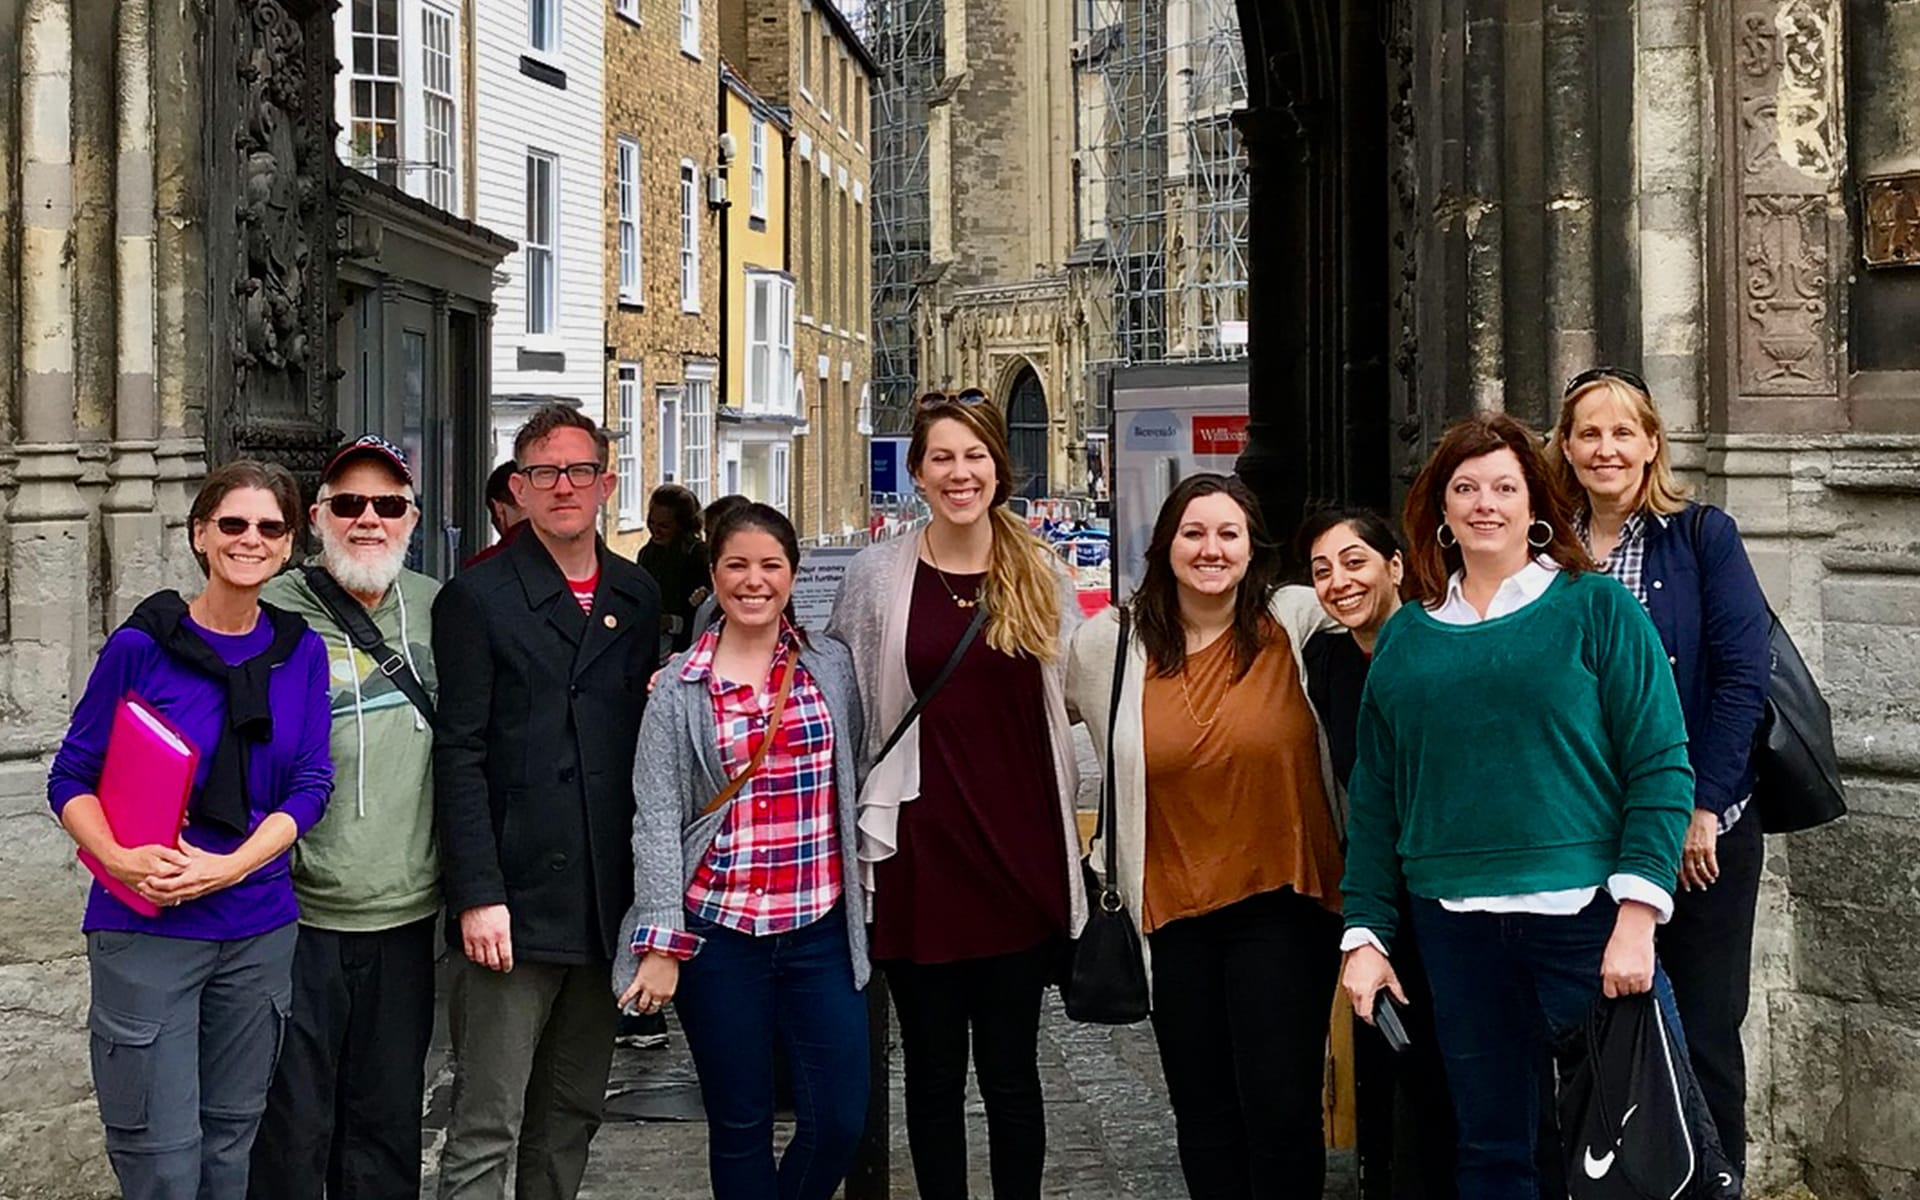 Sandi Glahn and Reg Grant and a group of students in Europe